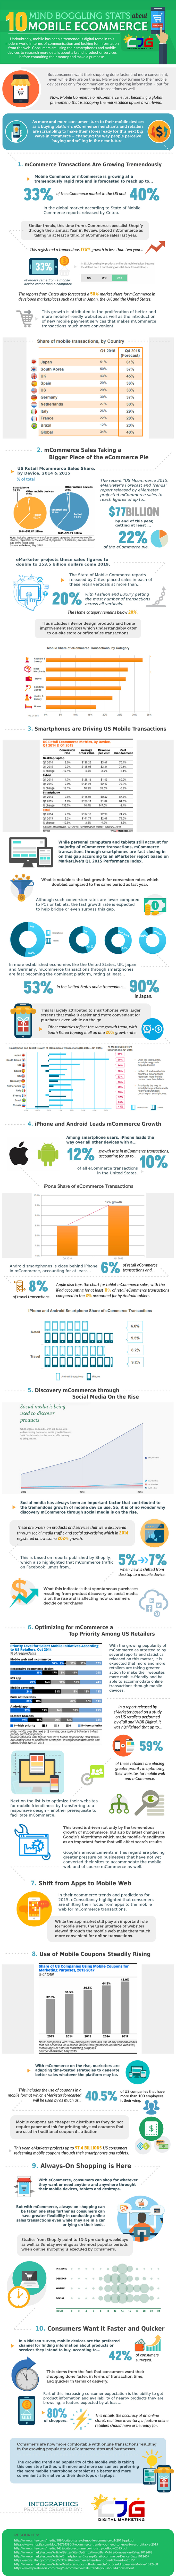 Mobile ecommerce stats